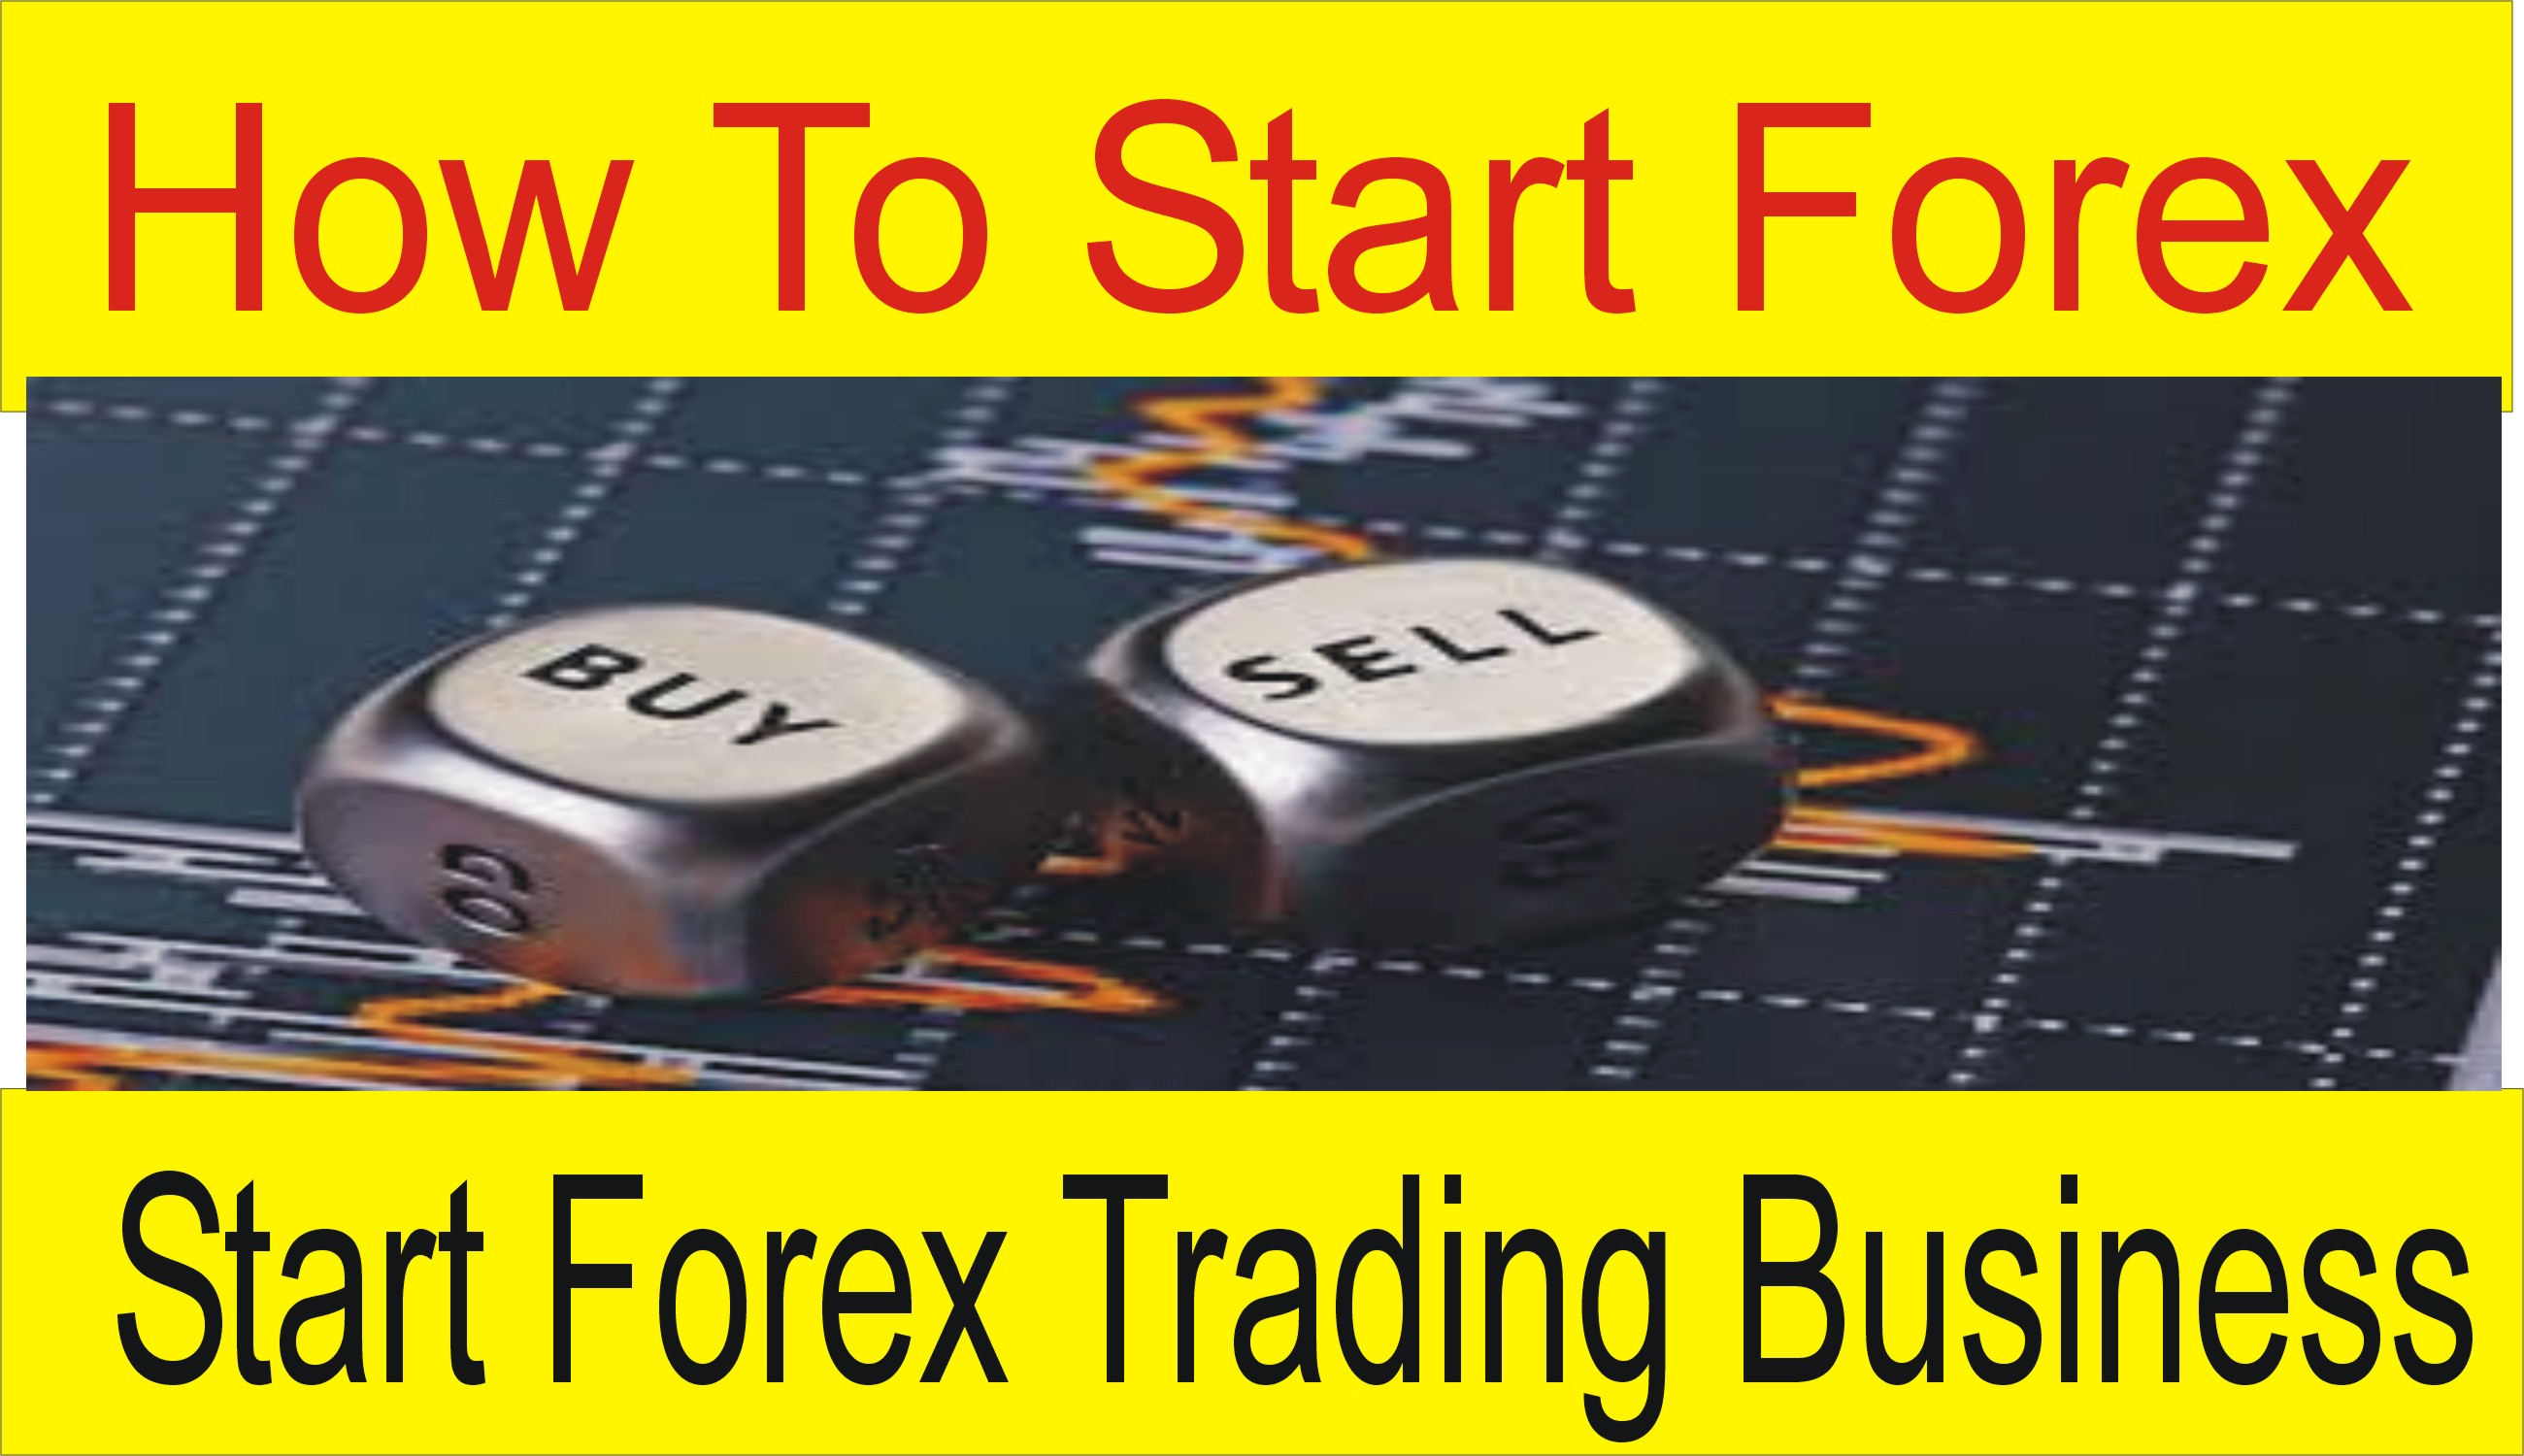 How to start forex trading business money management tool forex